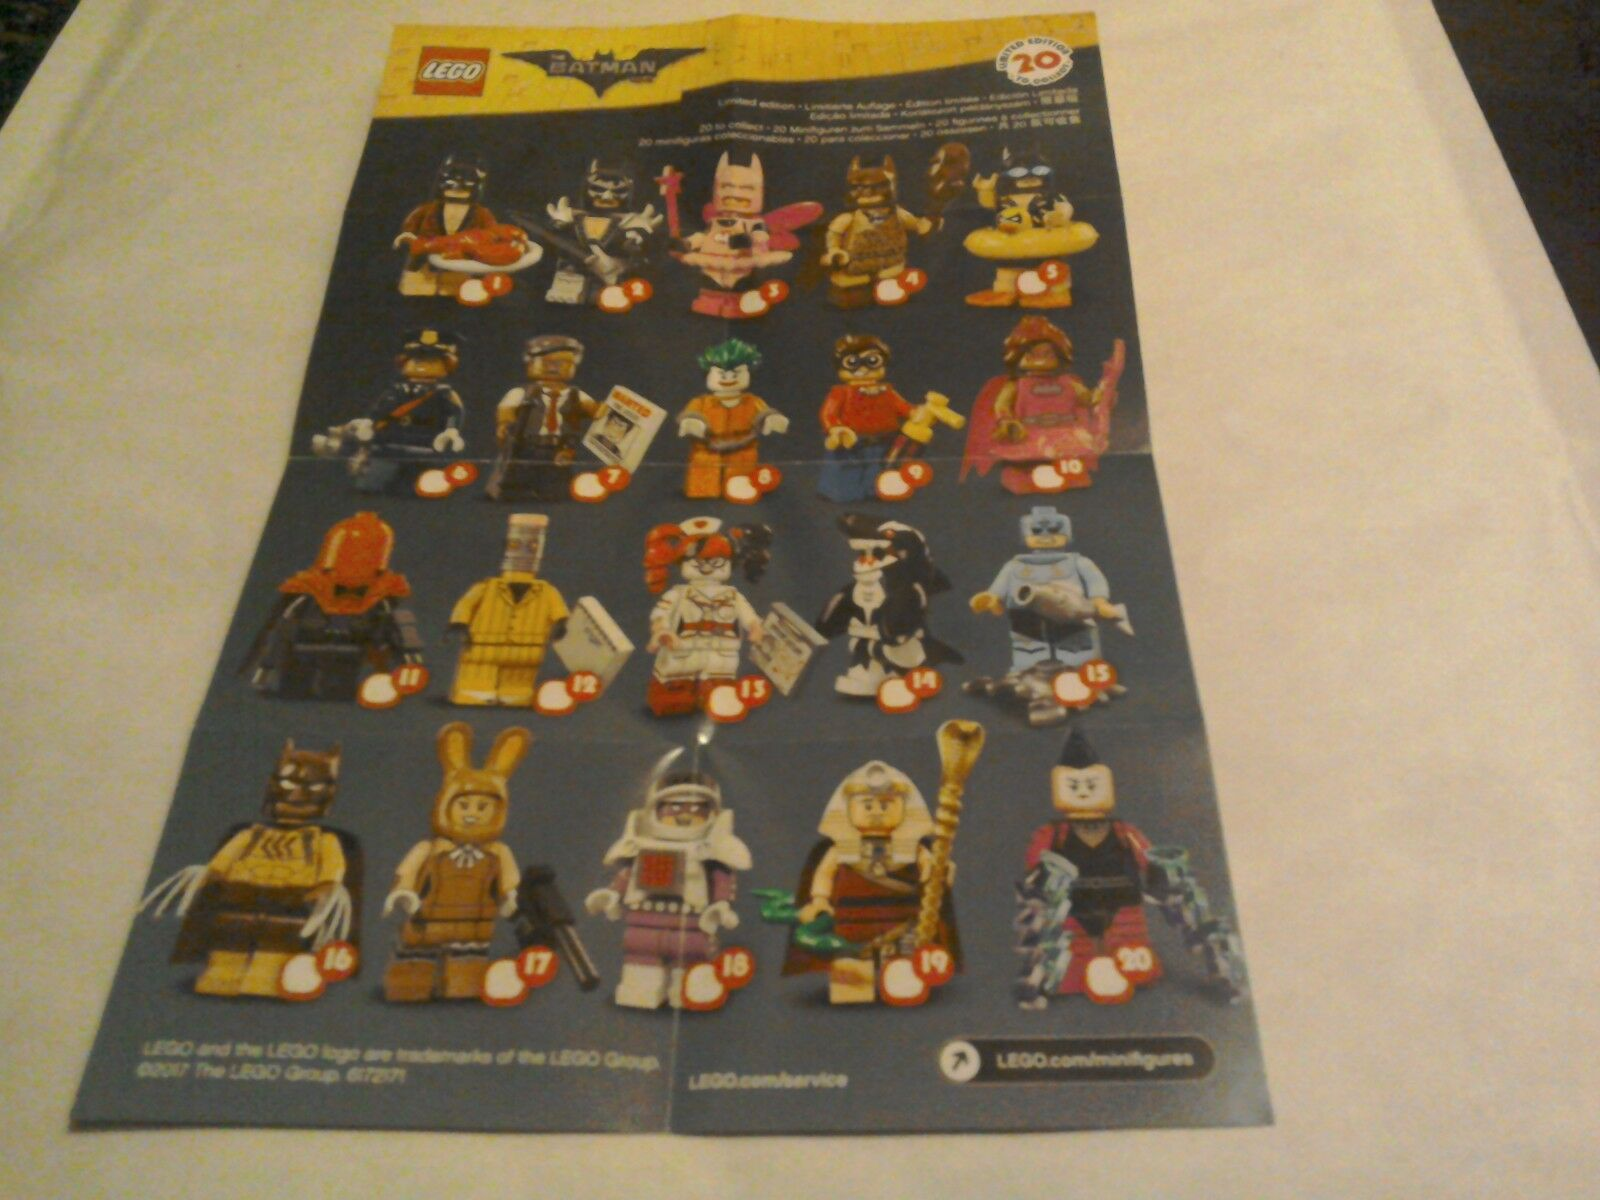 Lego The Batman Movie series 1 Limited Edition Minifigures 71017 Full Set of 20